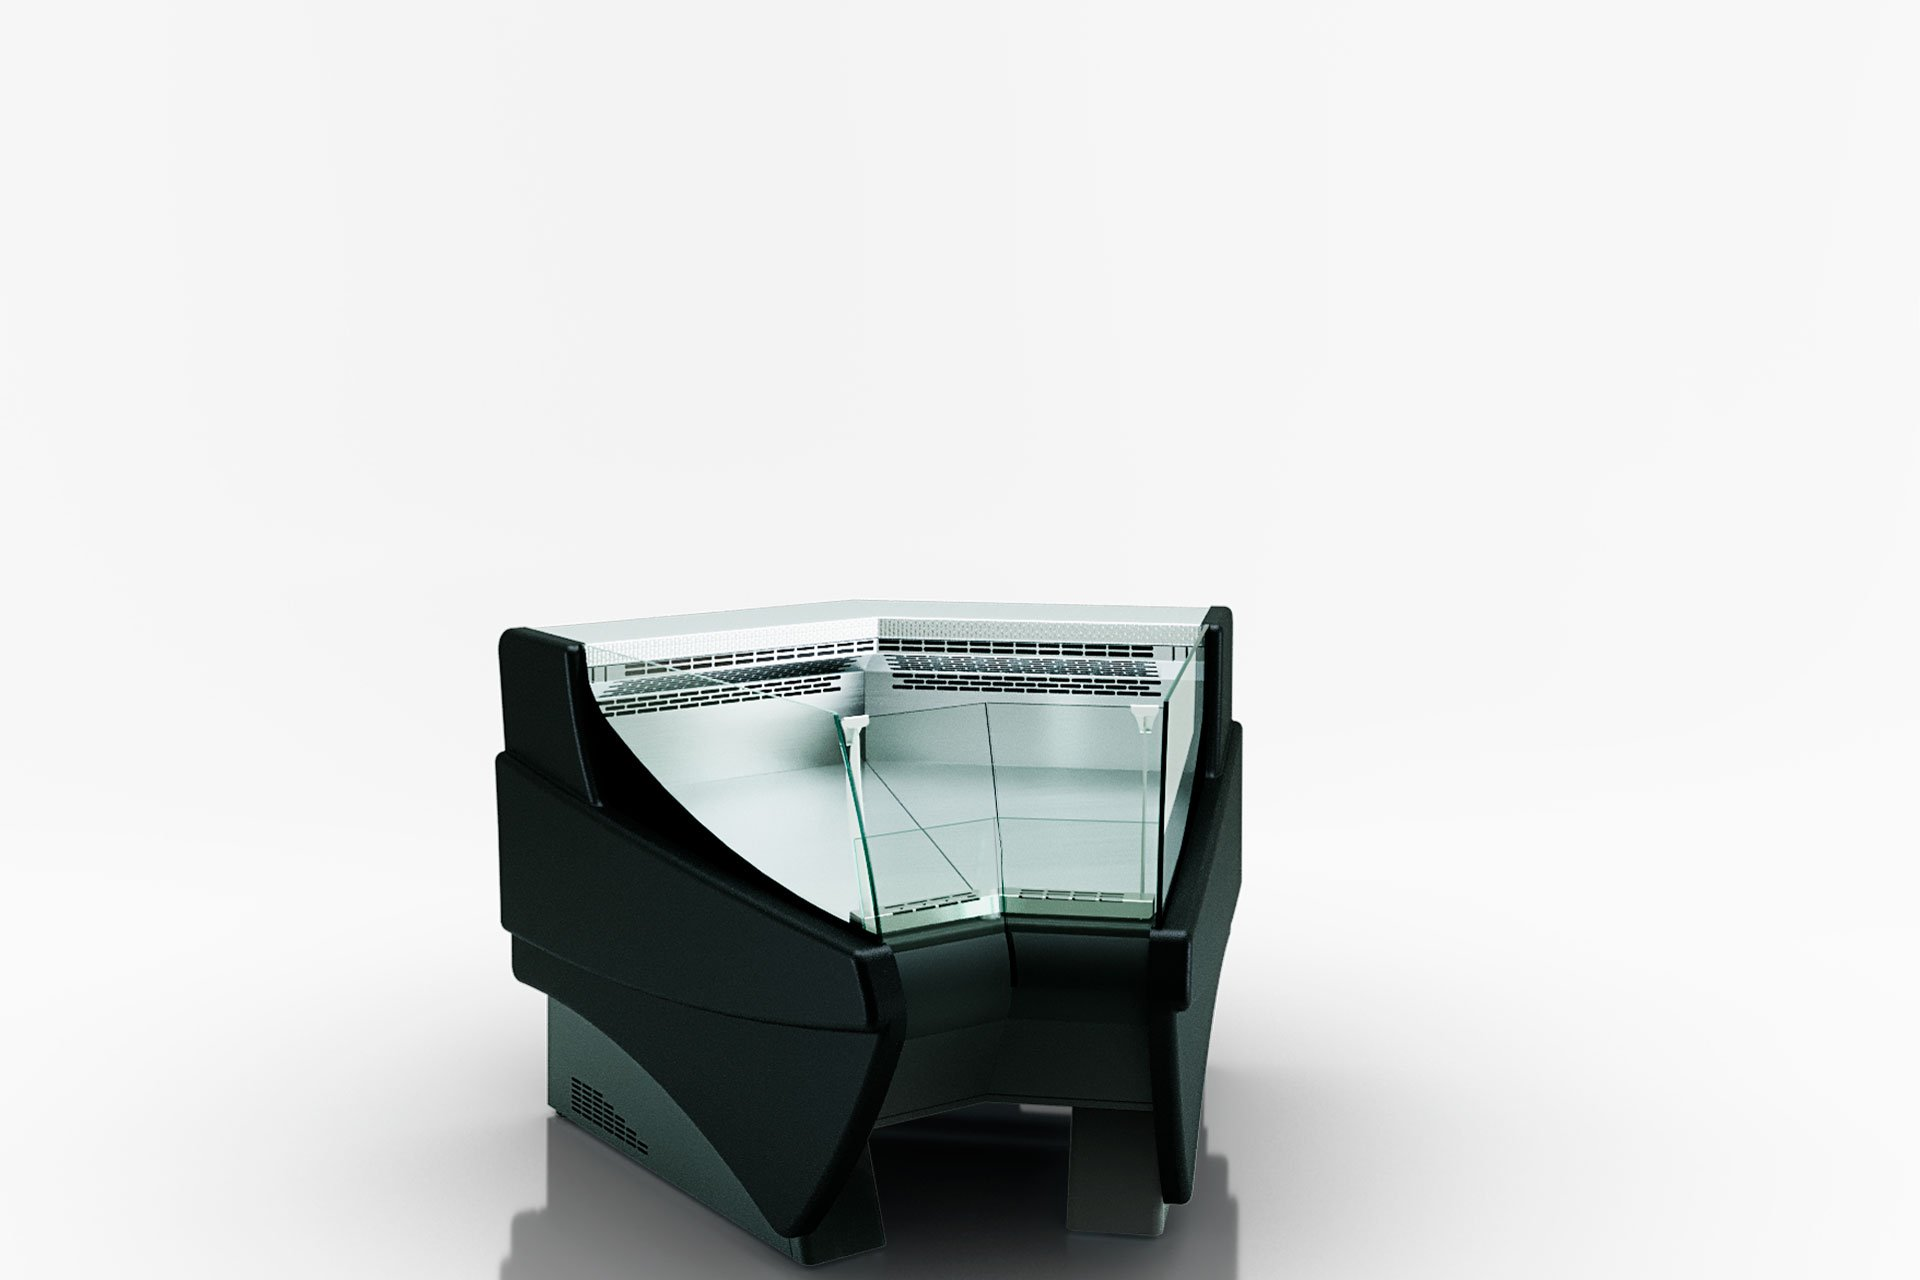 Counter Symphony luxe MG 120 deli self 085-DLM-IS45